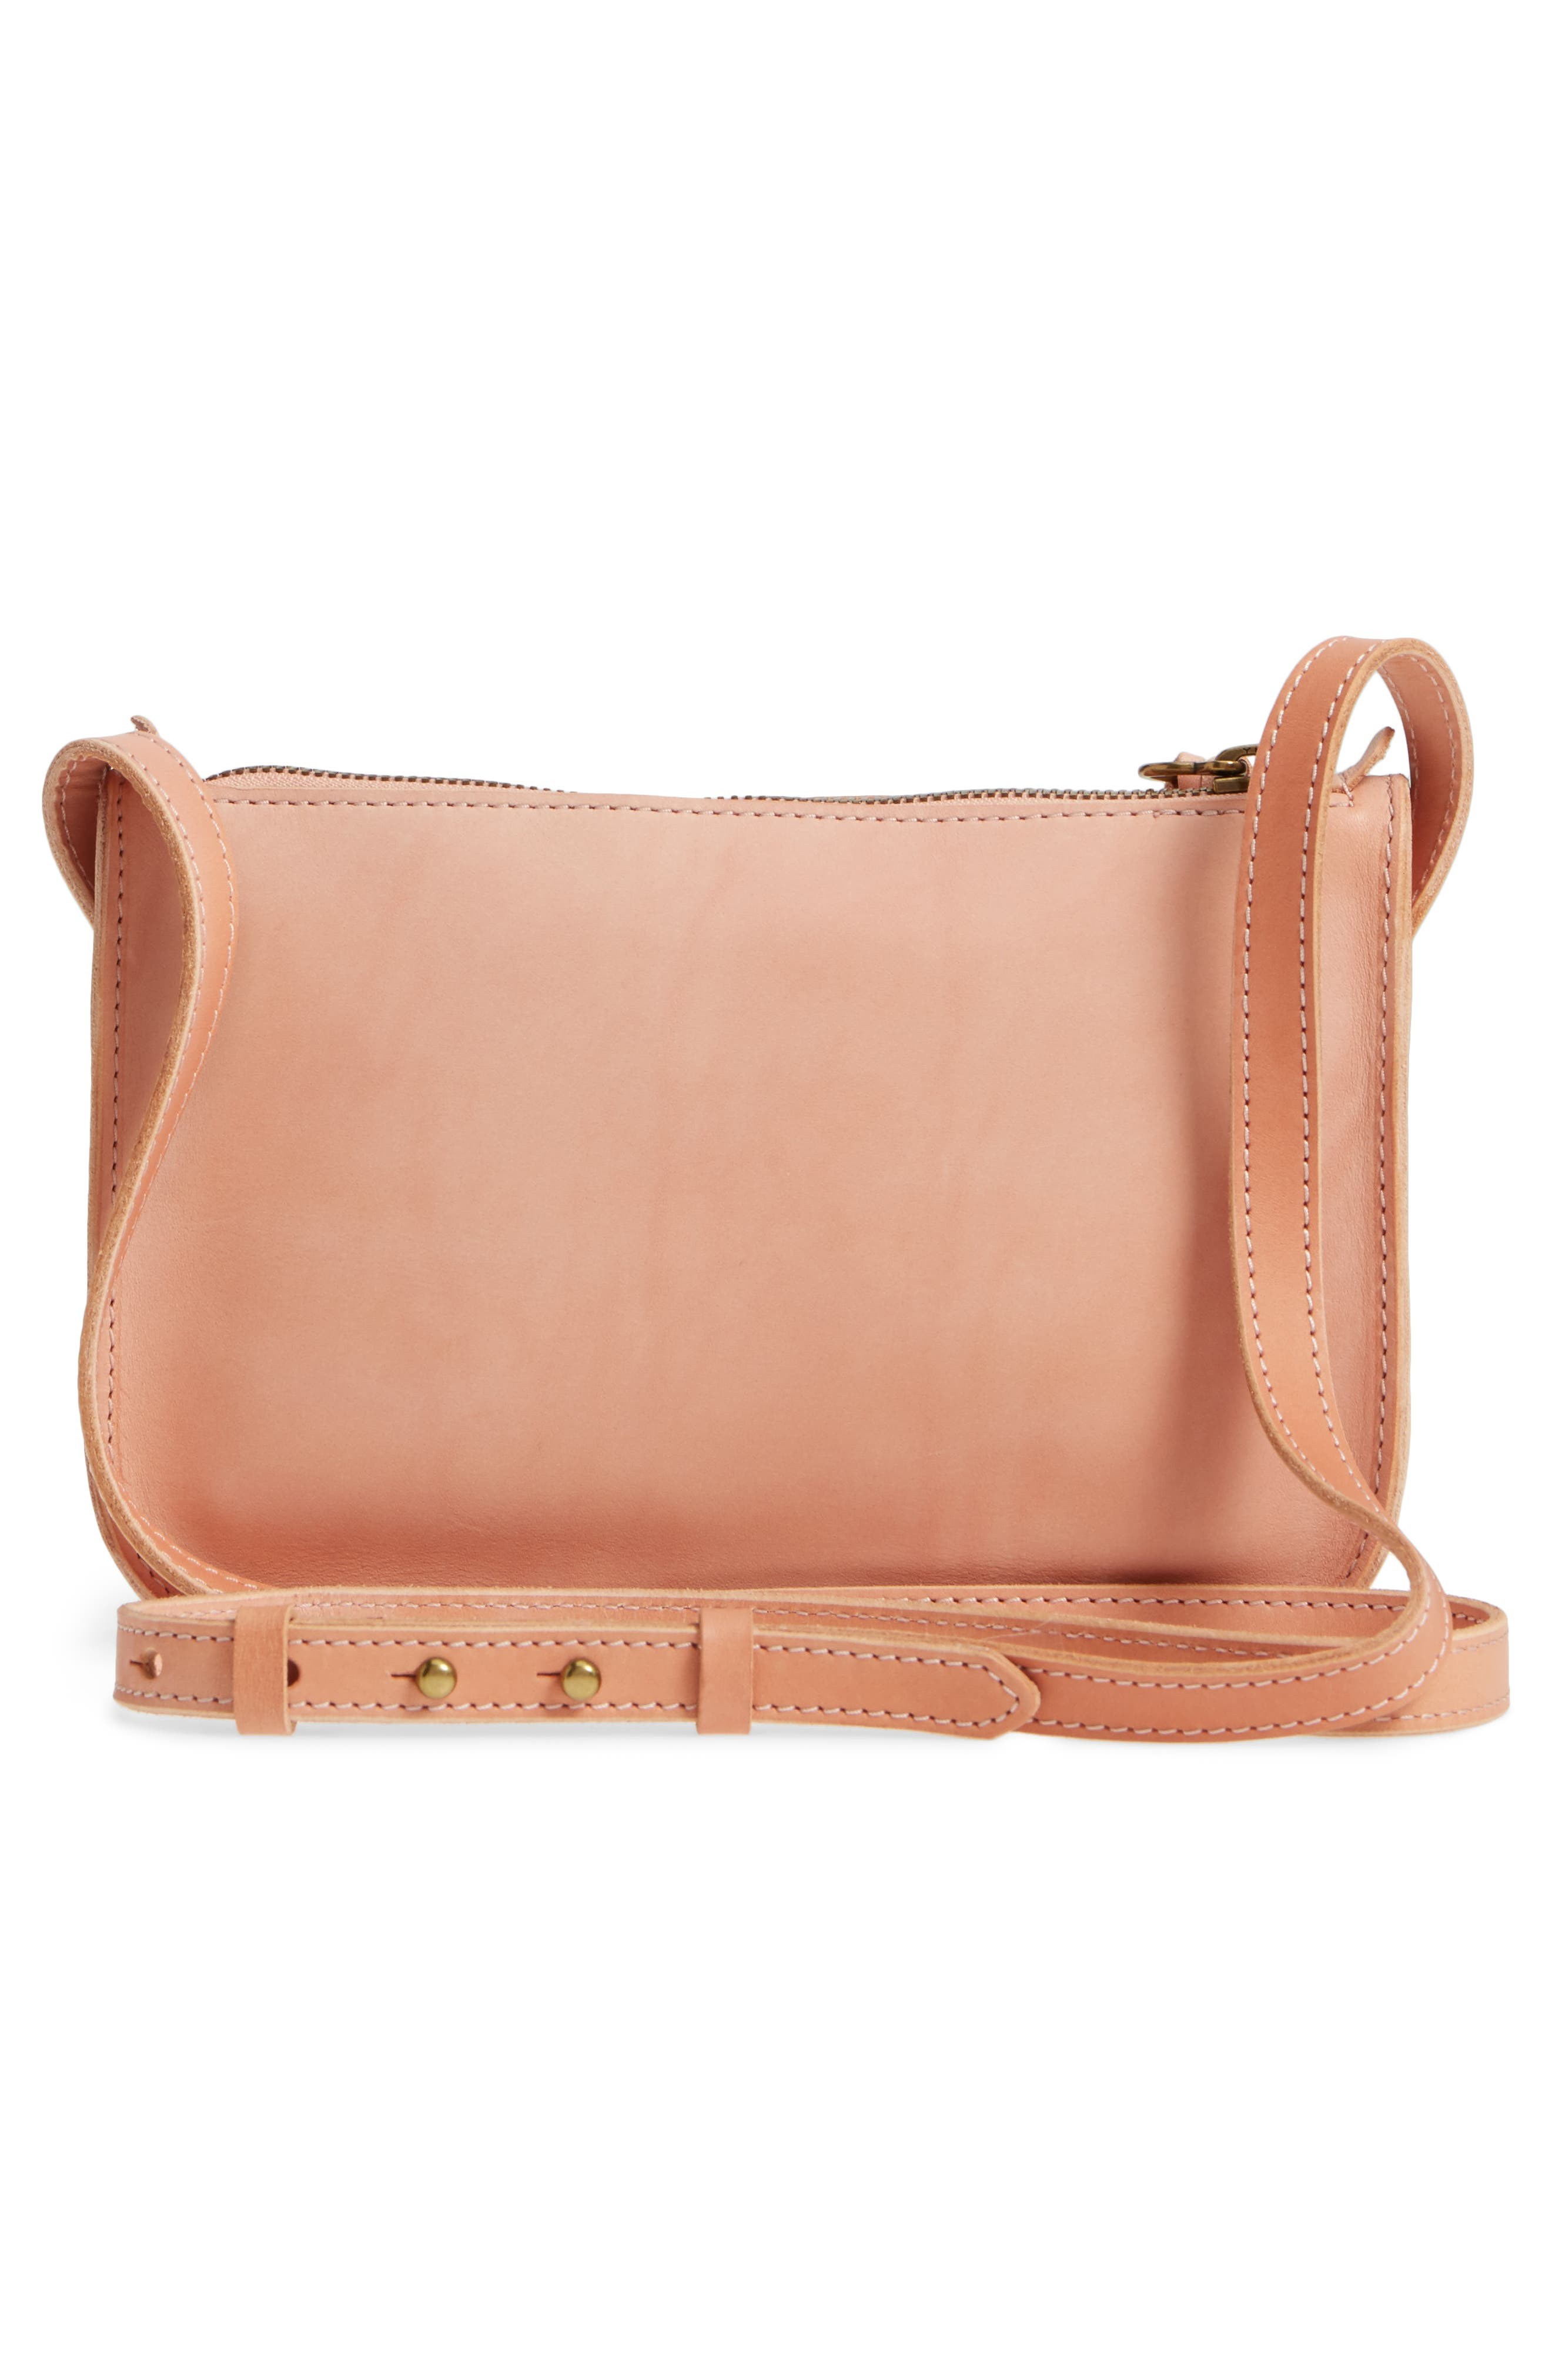 Simple Leather Crossbody Bag,                             Alternate thumbnail 3, color,                             PETAL PINK